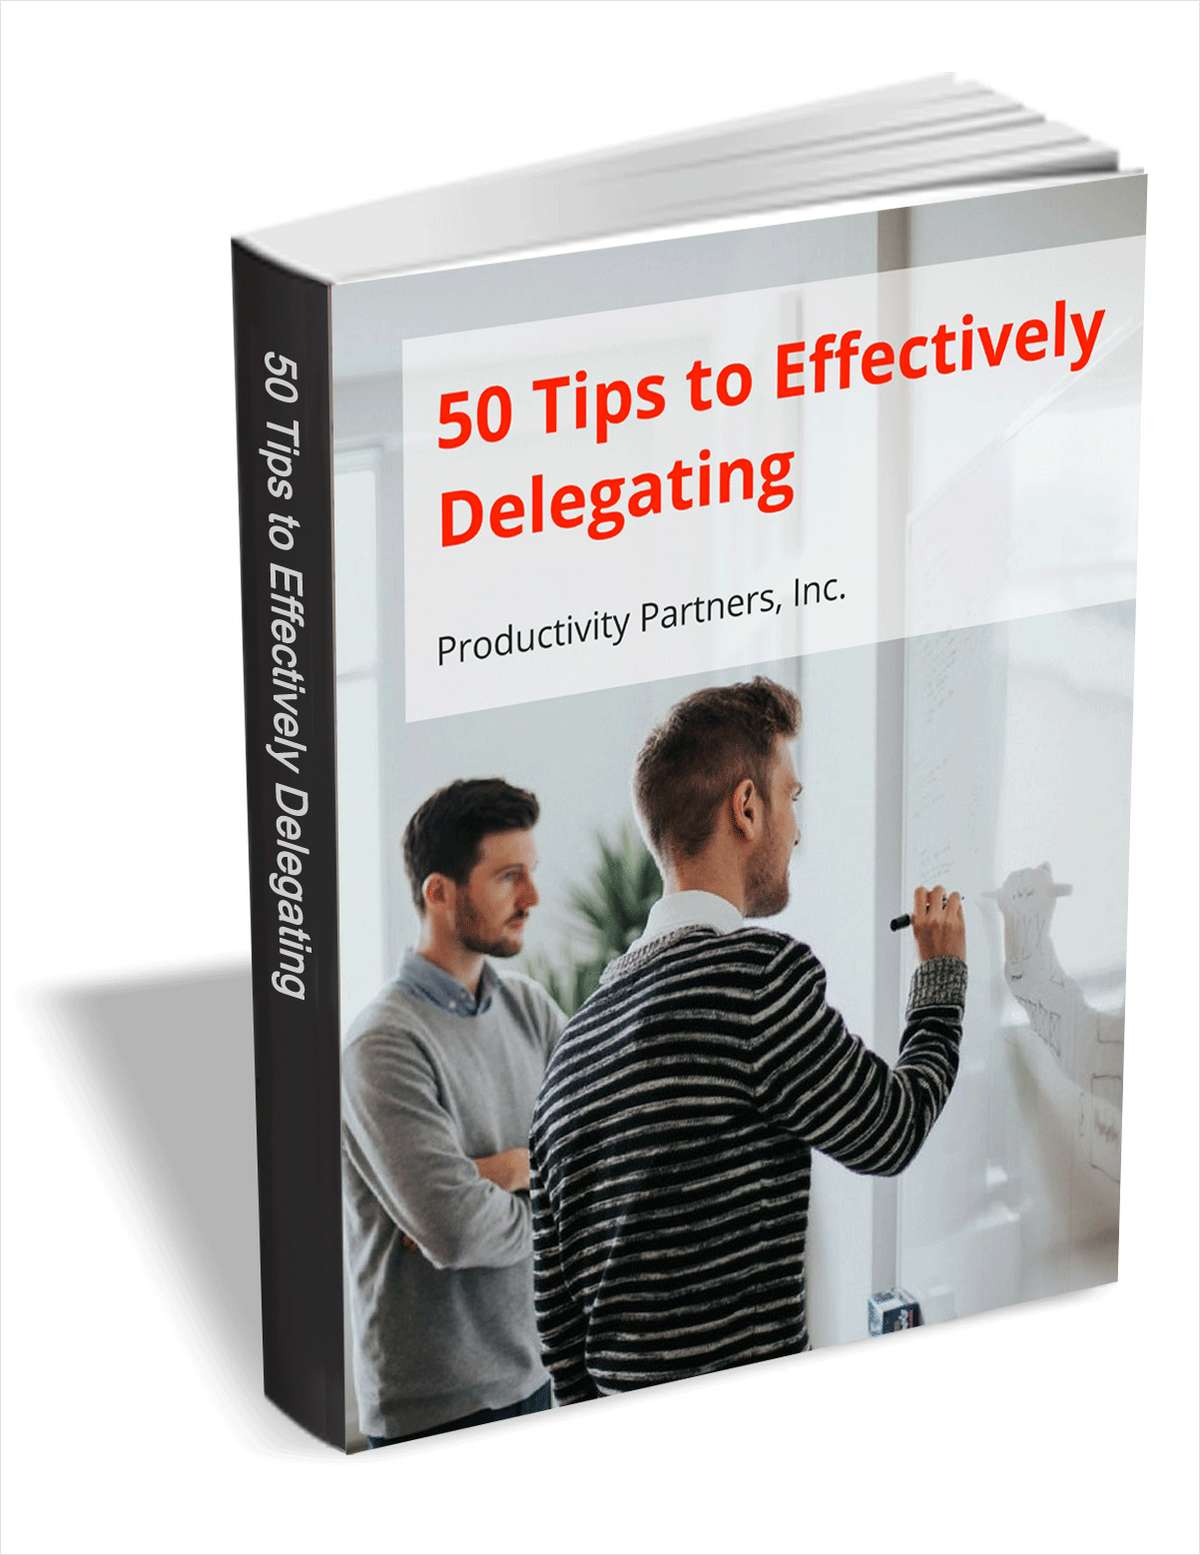 50 Tips to Effectively Delegating